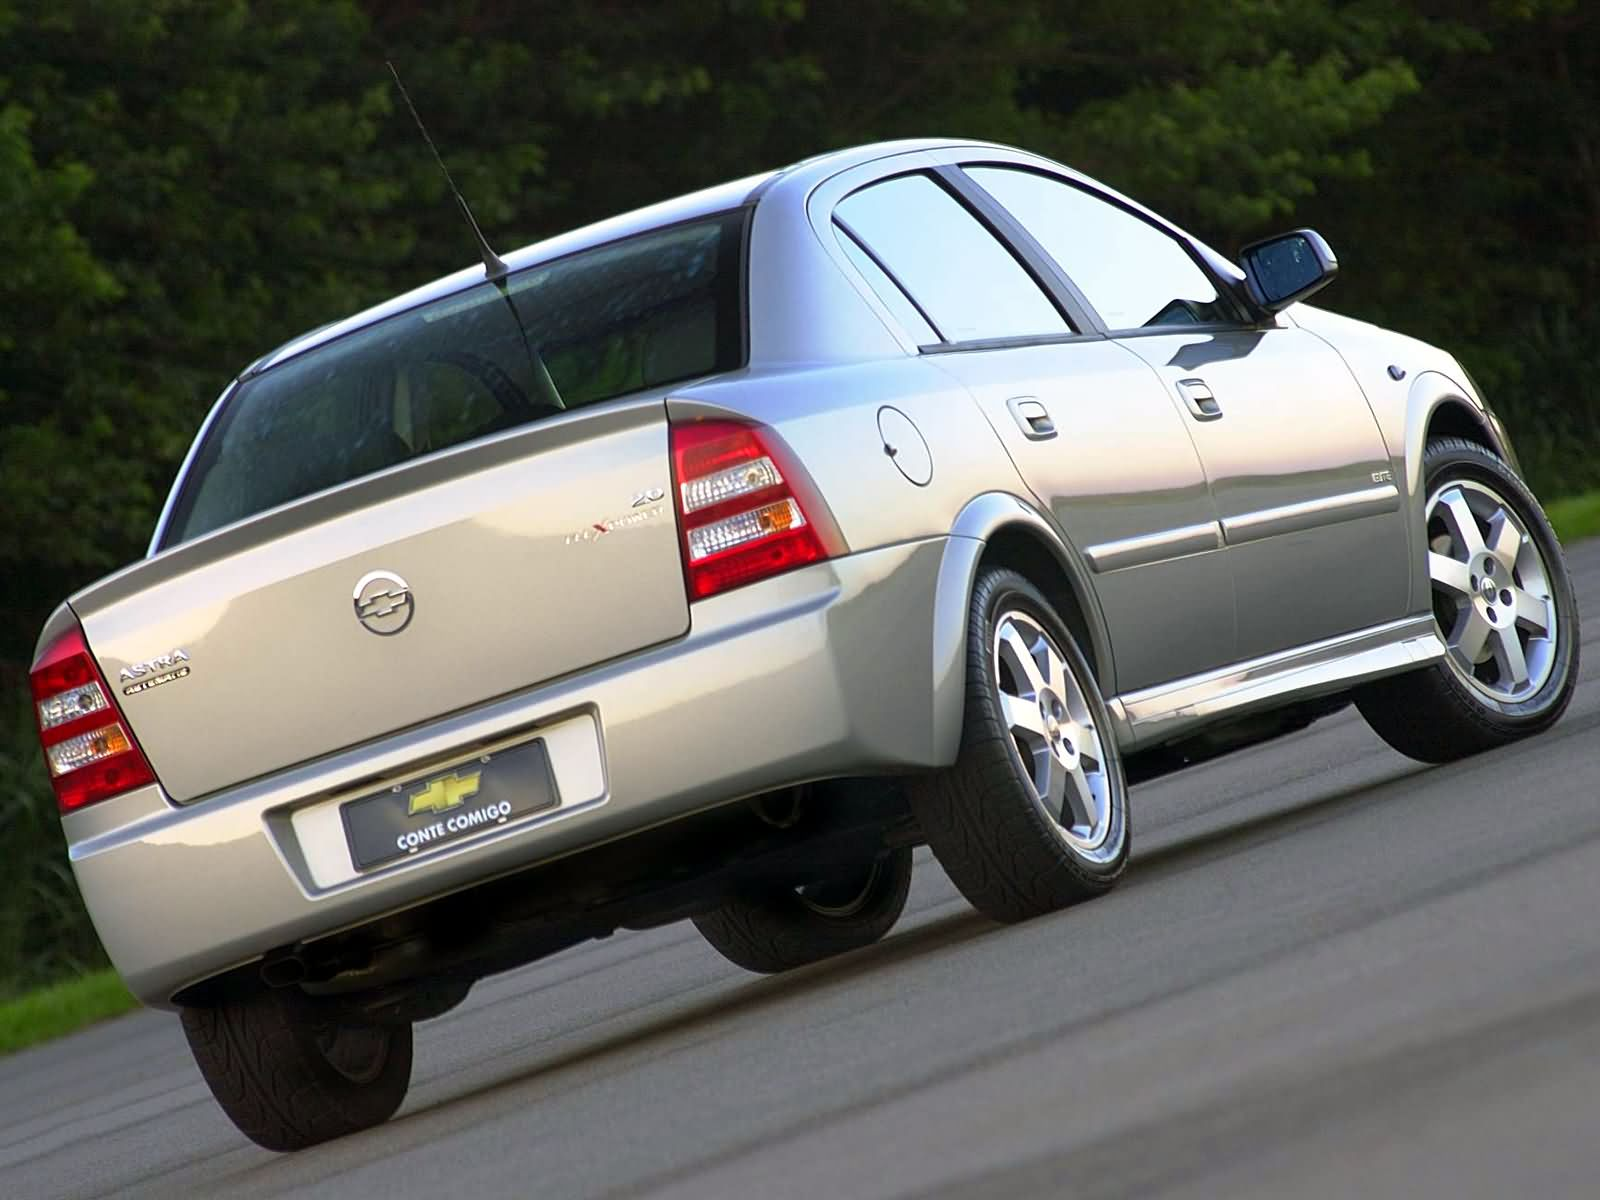 chevrolet astra images #7